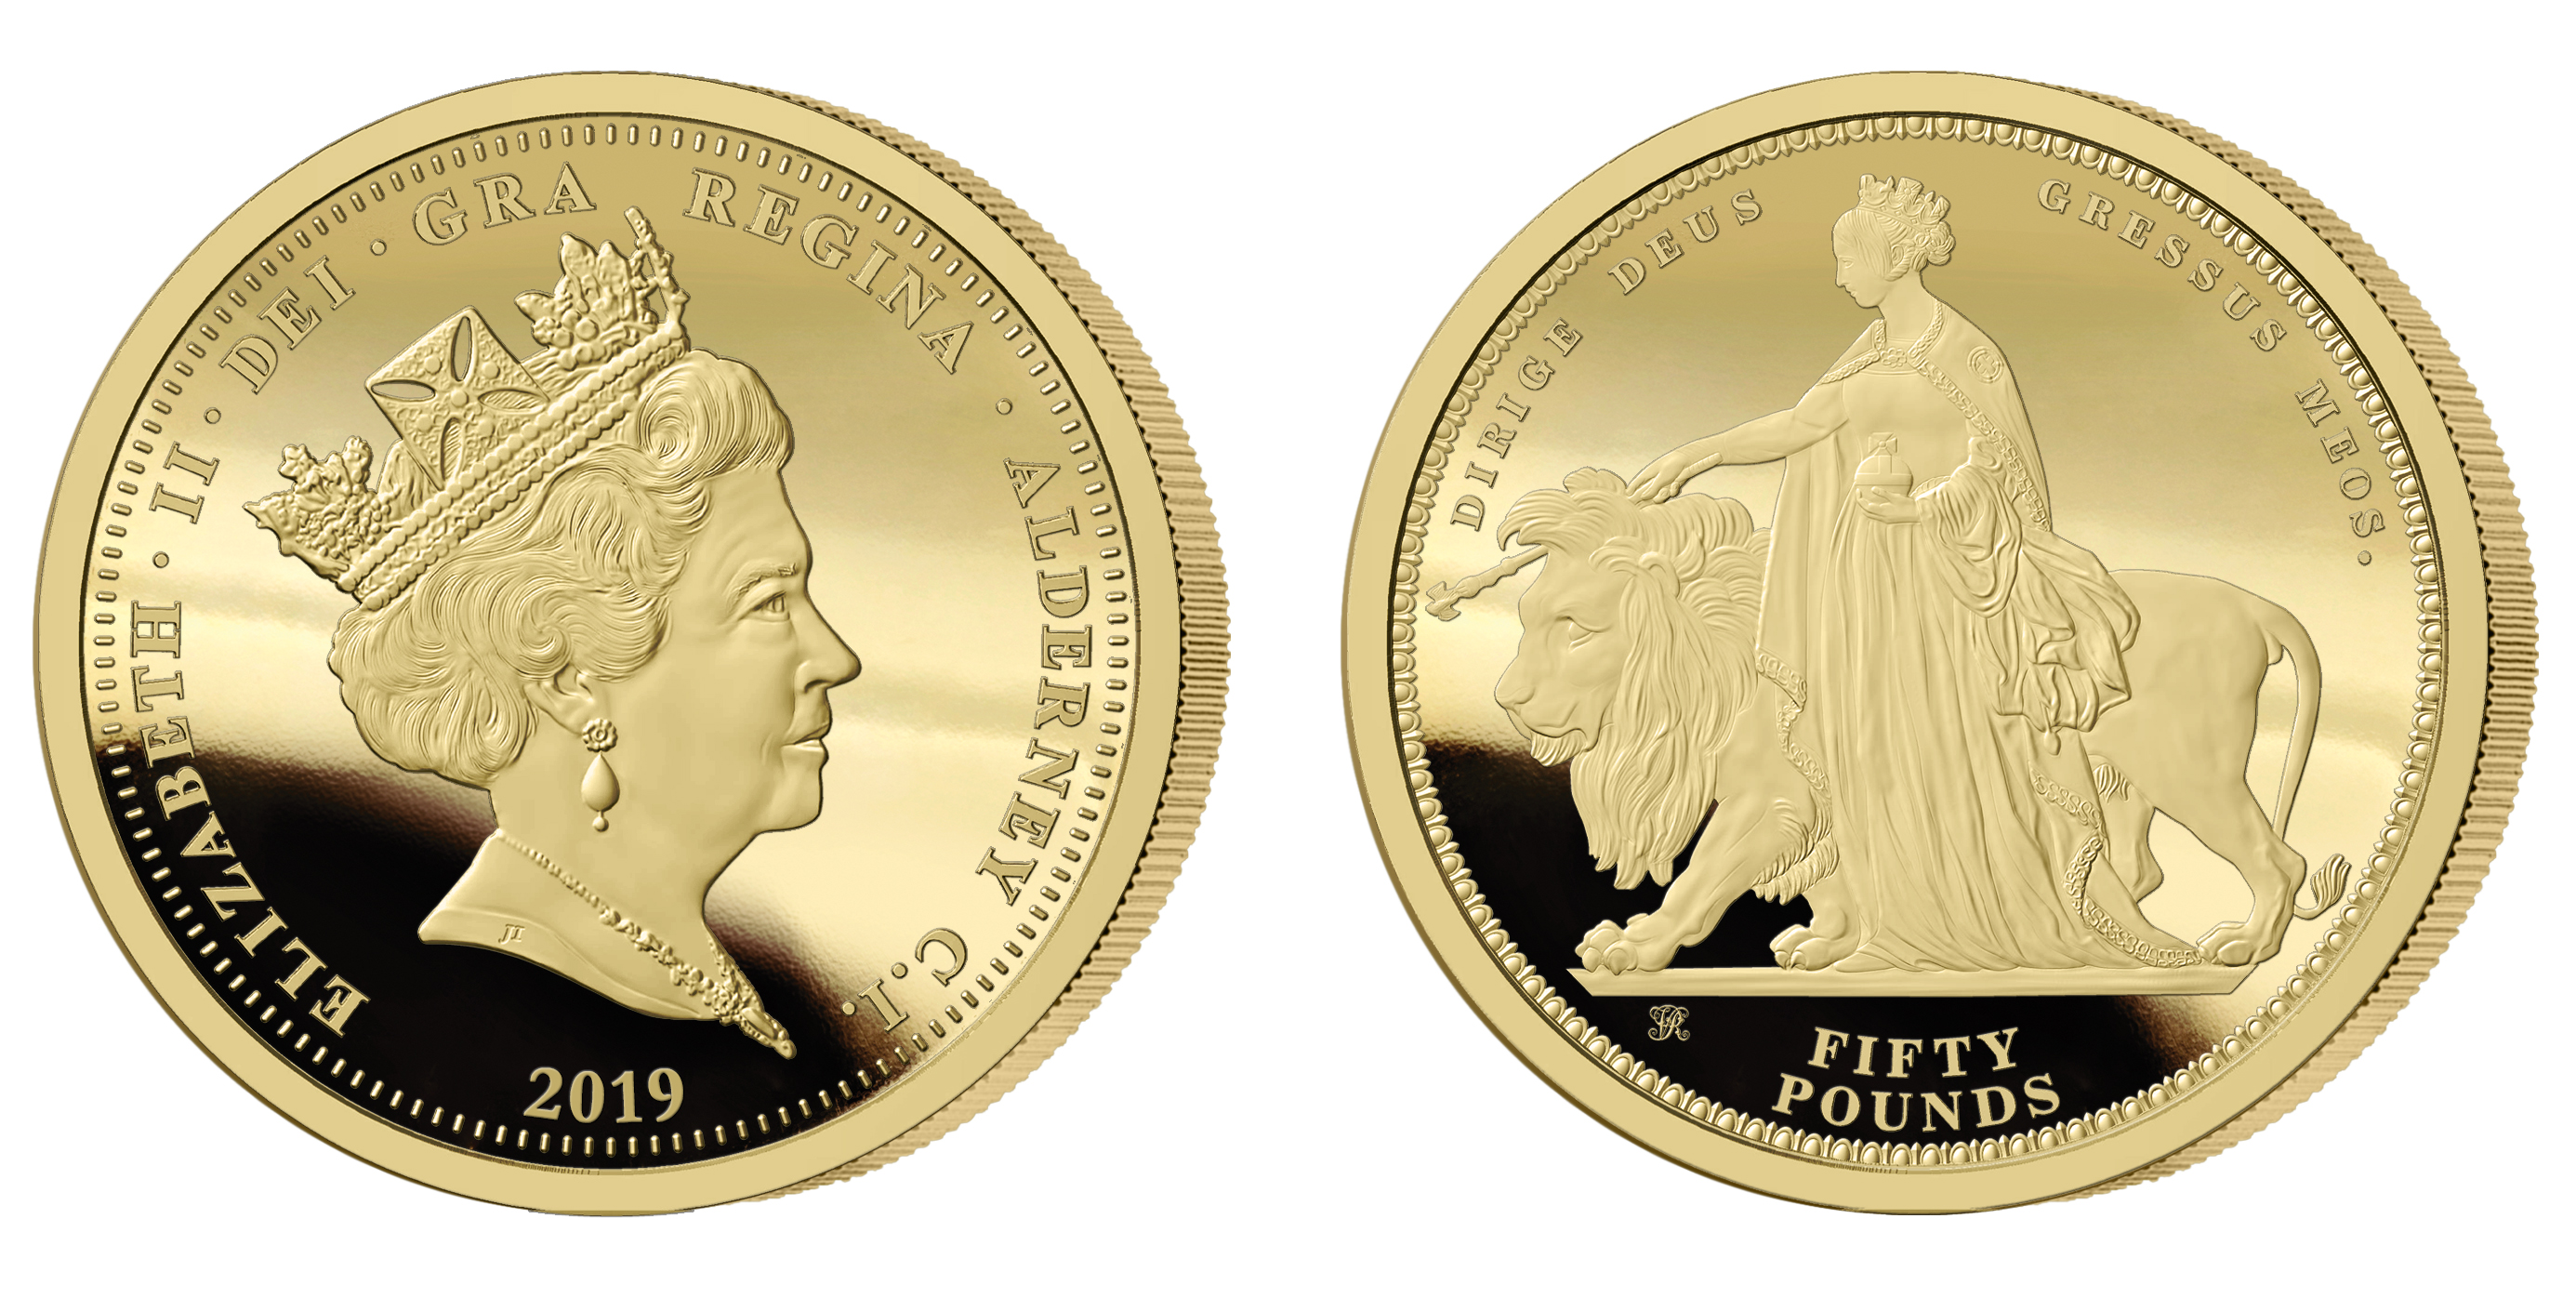 The 2019 Queen Victoria 200th Anniversary 24 carat Gold Fifty Pound Sovereign